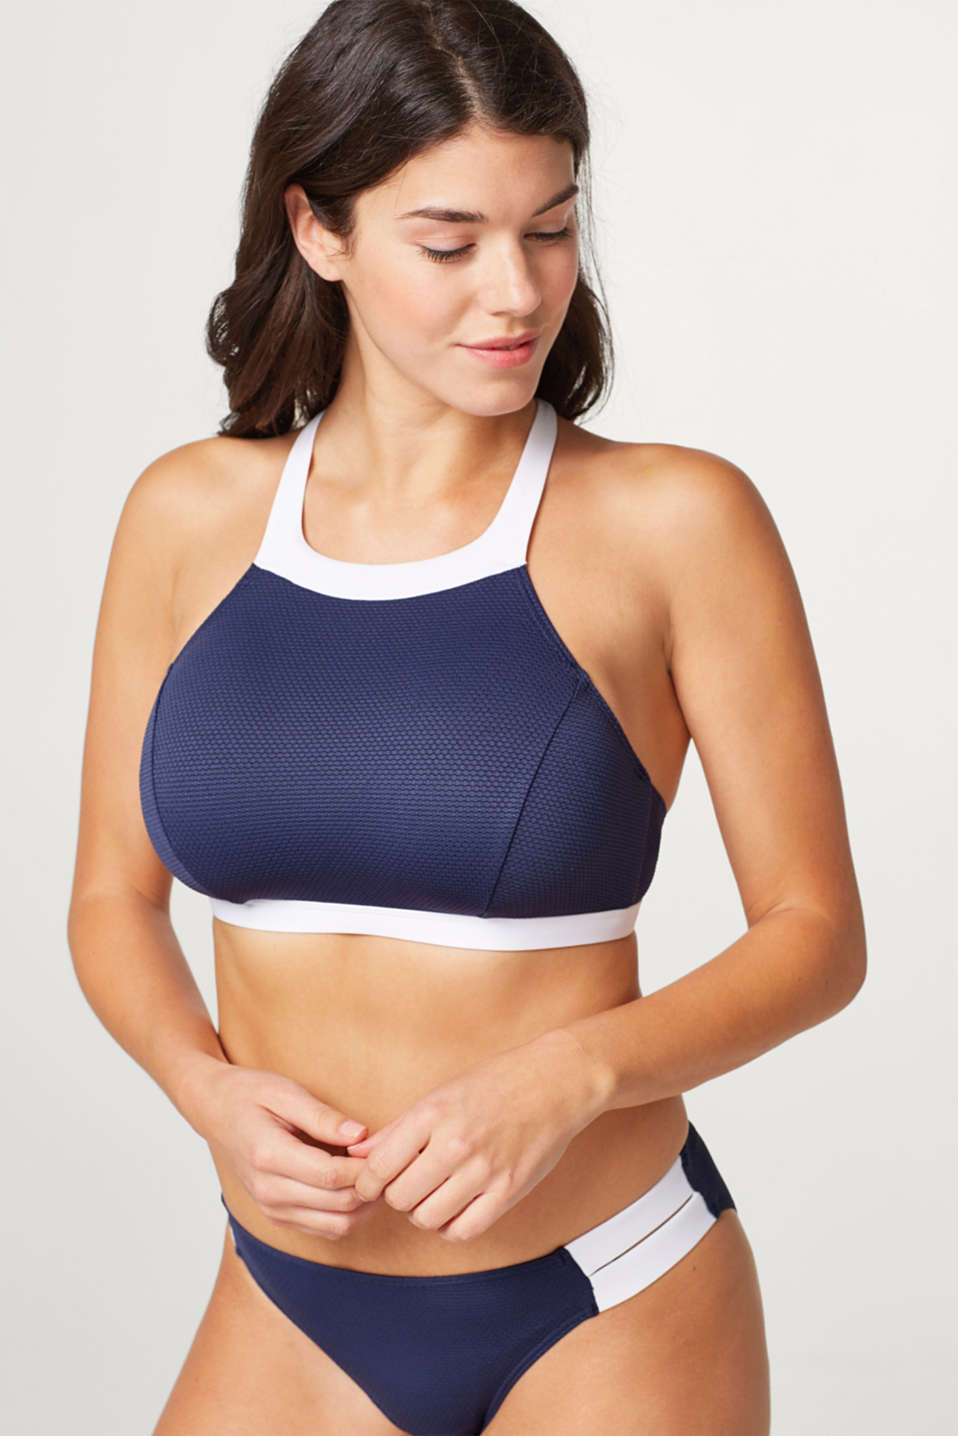 Esprit - Wattiertes High-Neck-Top für Big Cups